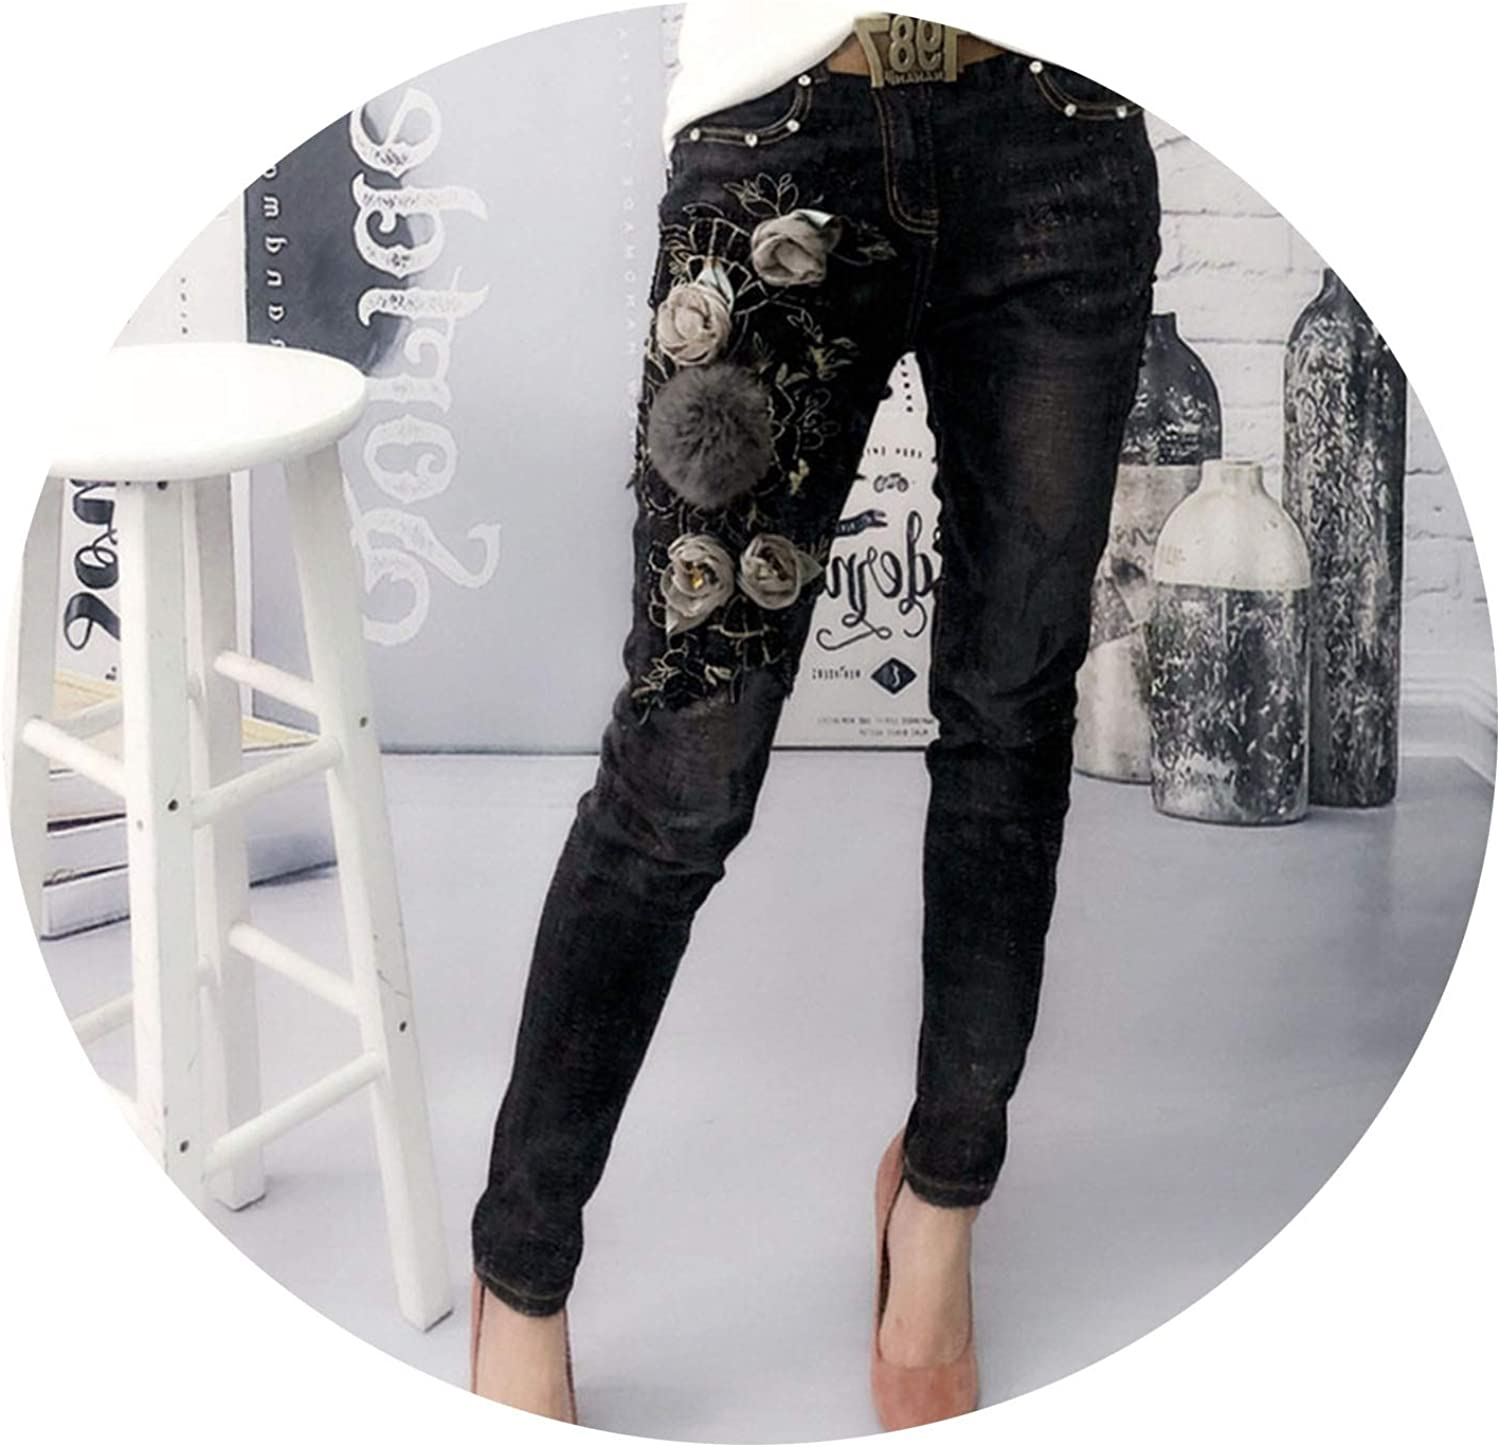 blueeshore Jeans Stretch Flower Women Vintage Denim Jeans Ladies Trousers Female Jeans Skinny Jeans Woman